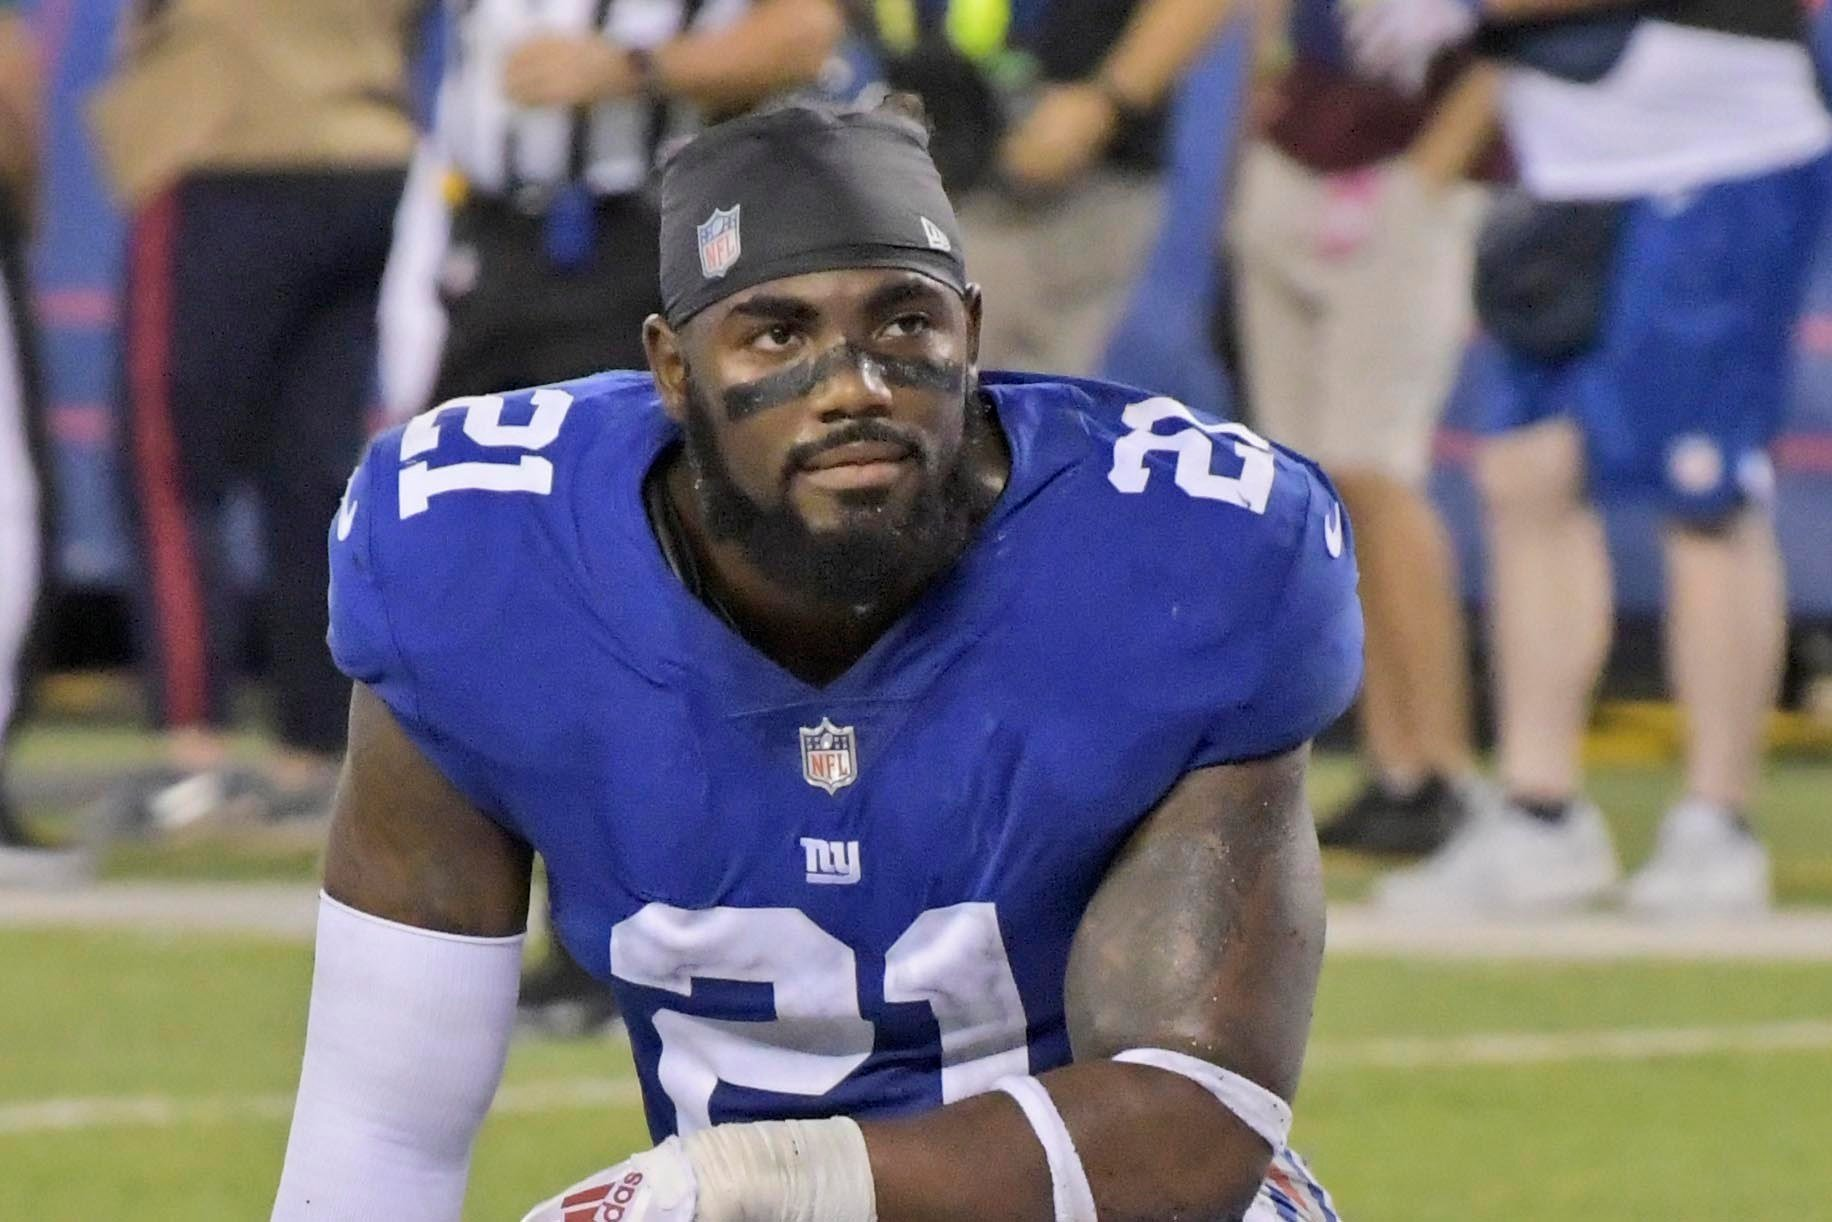 Giants' safety options as Landon Collins looks like a goner